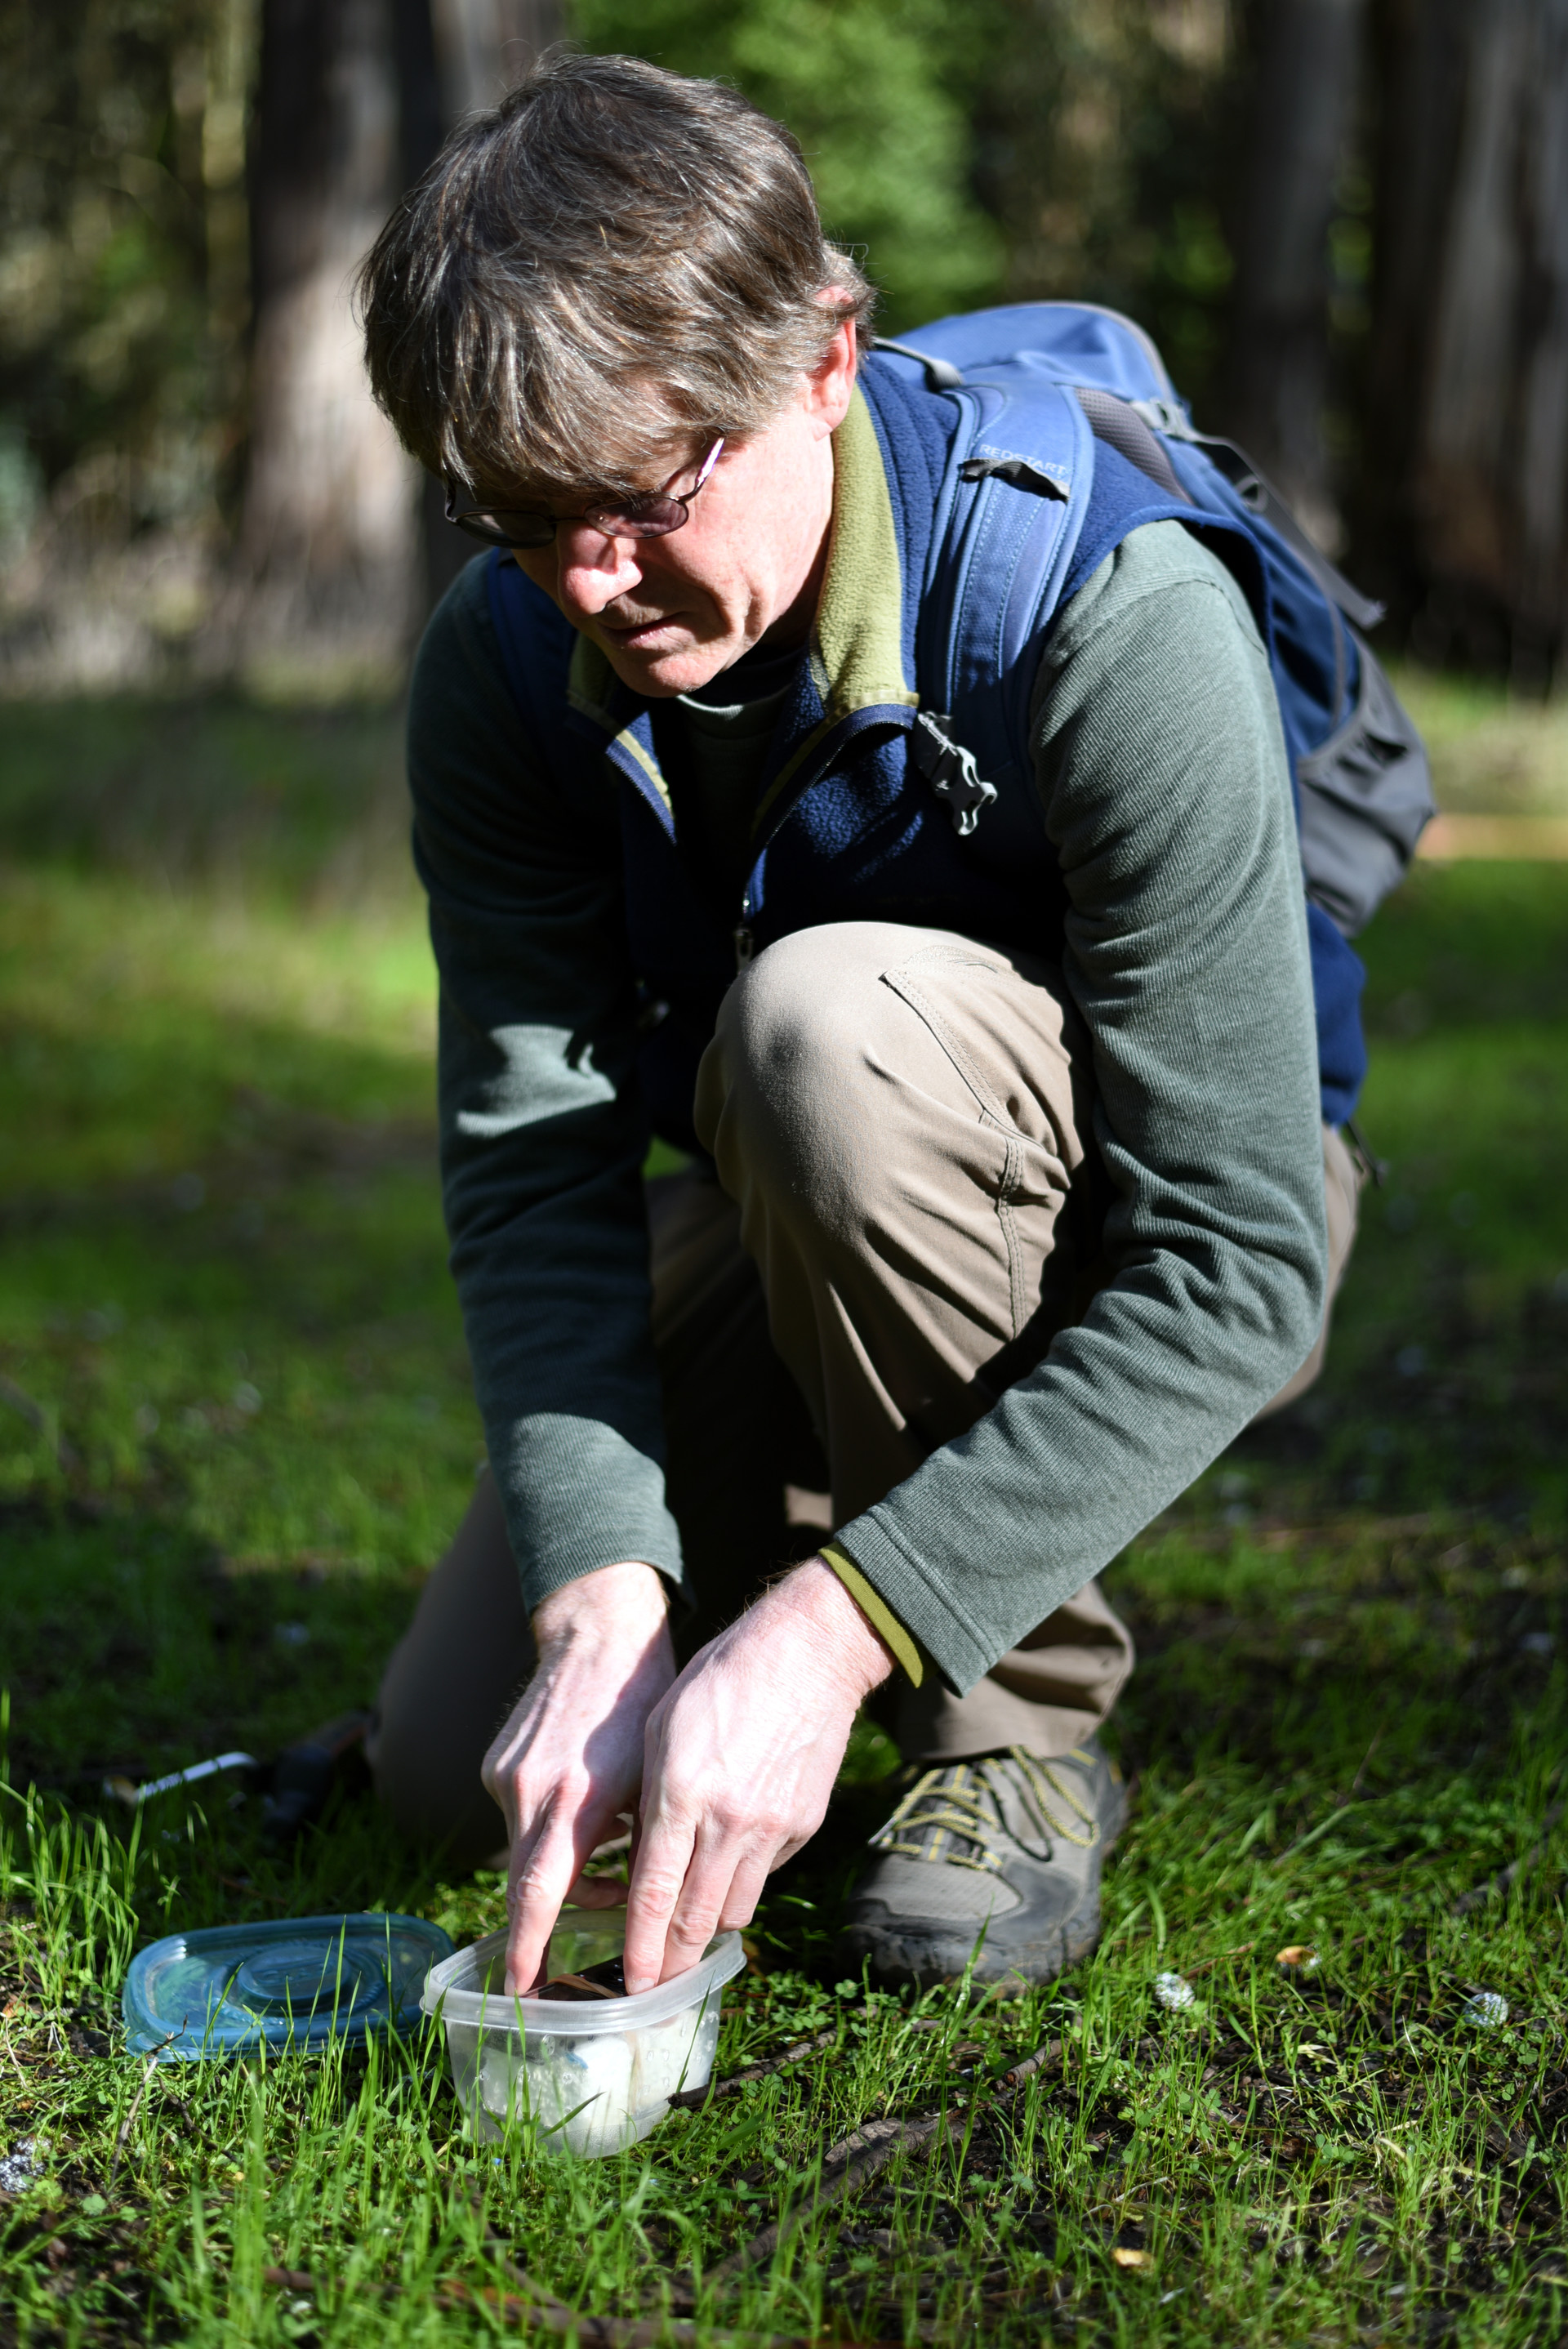 Brett Furnas placing a field recorder in Tilden Regional Park